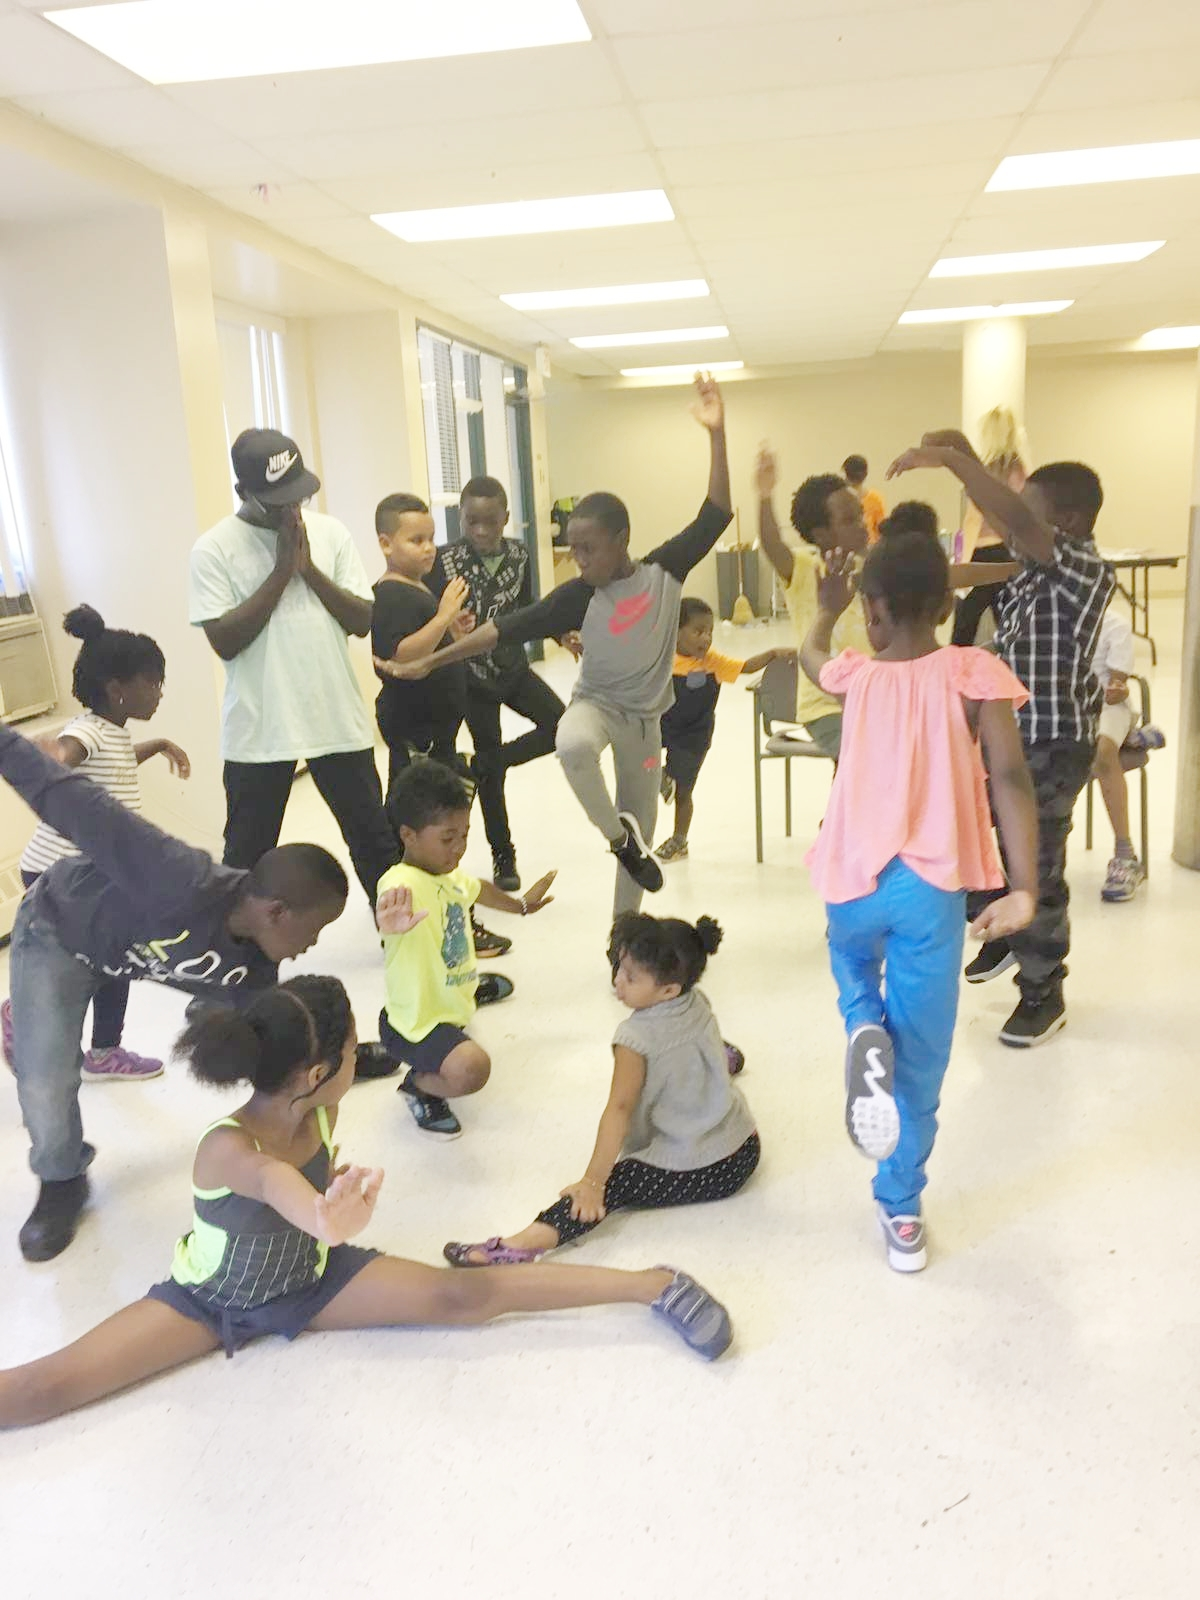 Our Mission - To integrate our community by providing a summer camp that exposes kids to various African cultures and traditions that will promote awareness, inspiration, identity, and pride.Learn More